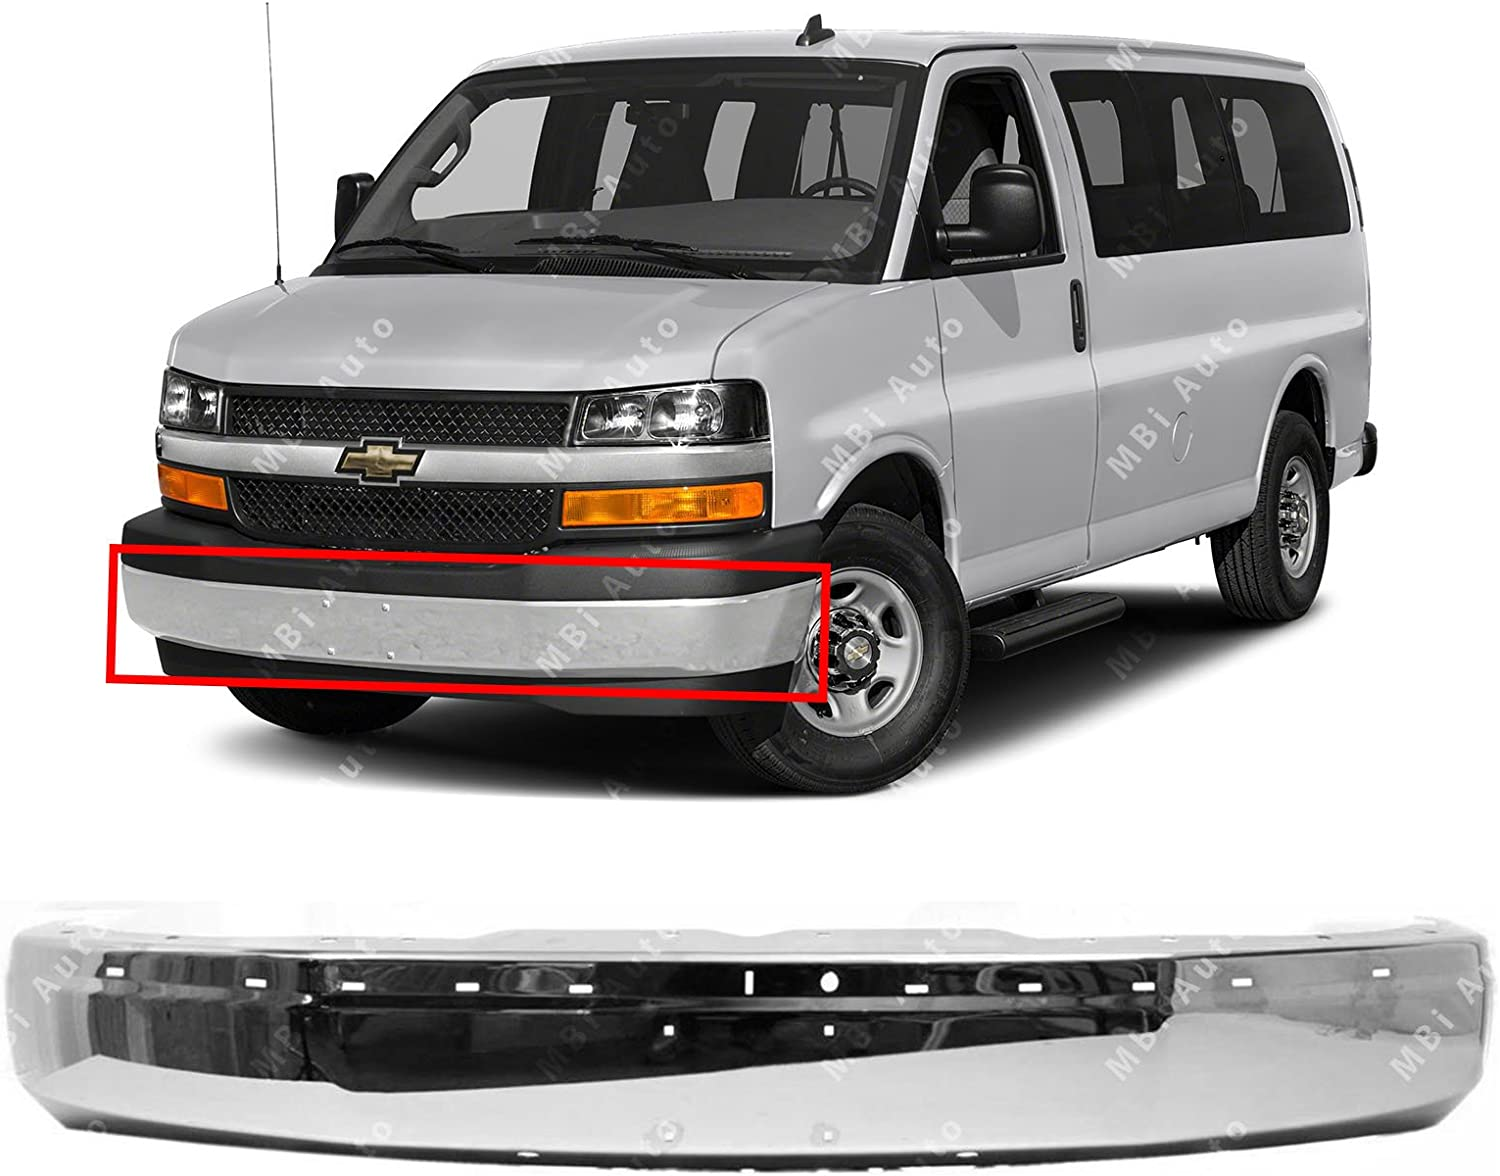 2014 2013 2012 Chevy Express Front Bumper Cover for 2003-2015 Chevrolet